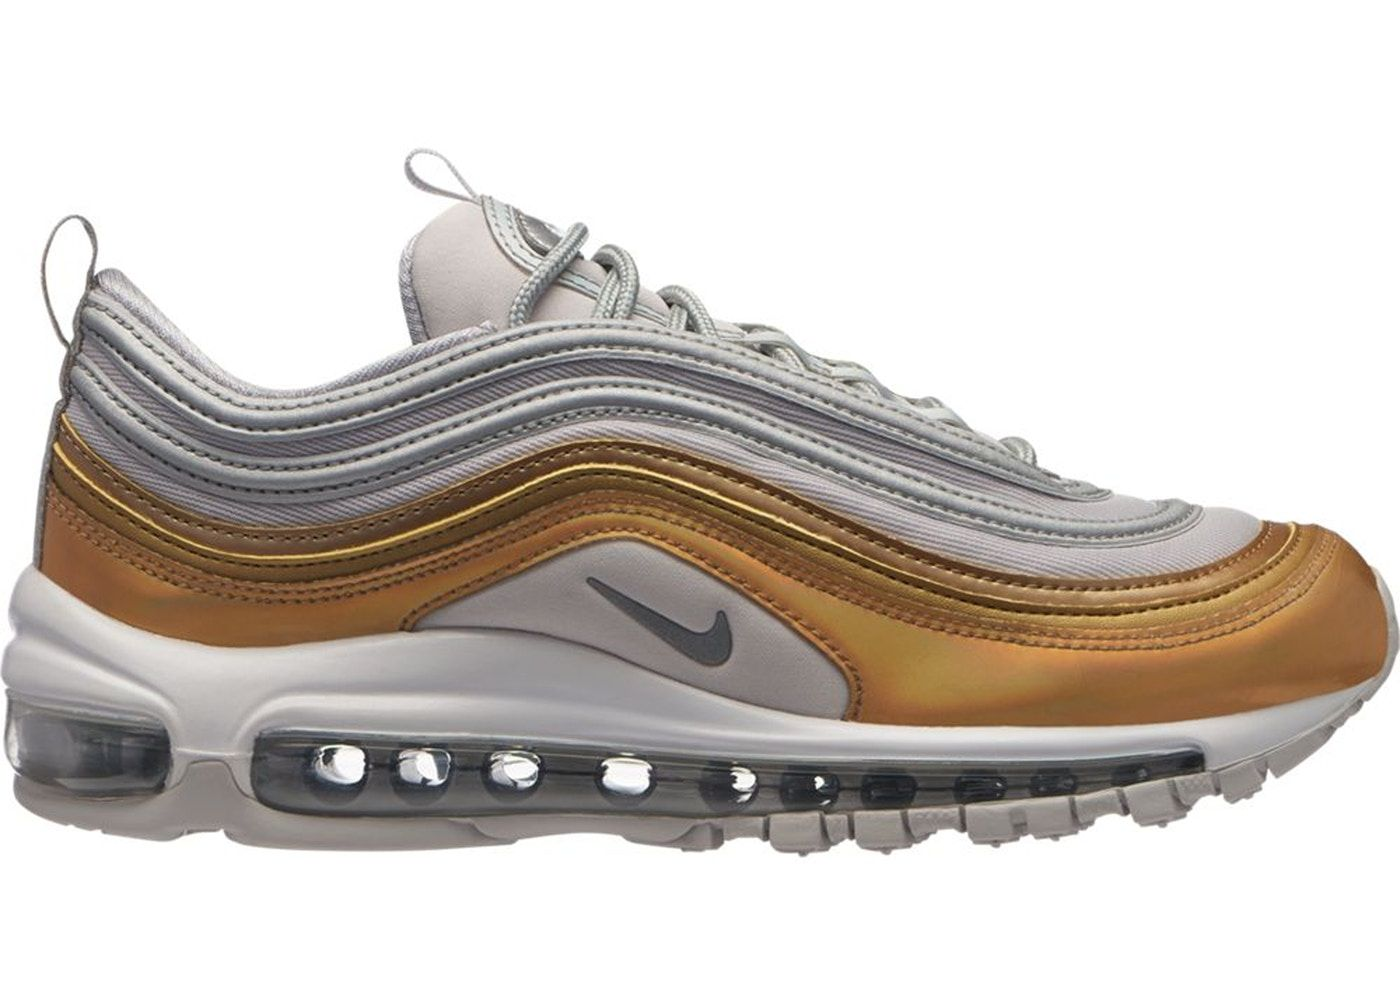 Check out the Air Max 97 Vast Grey Metallic Gold (W) available on StockX c74607c33